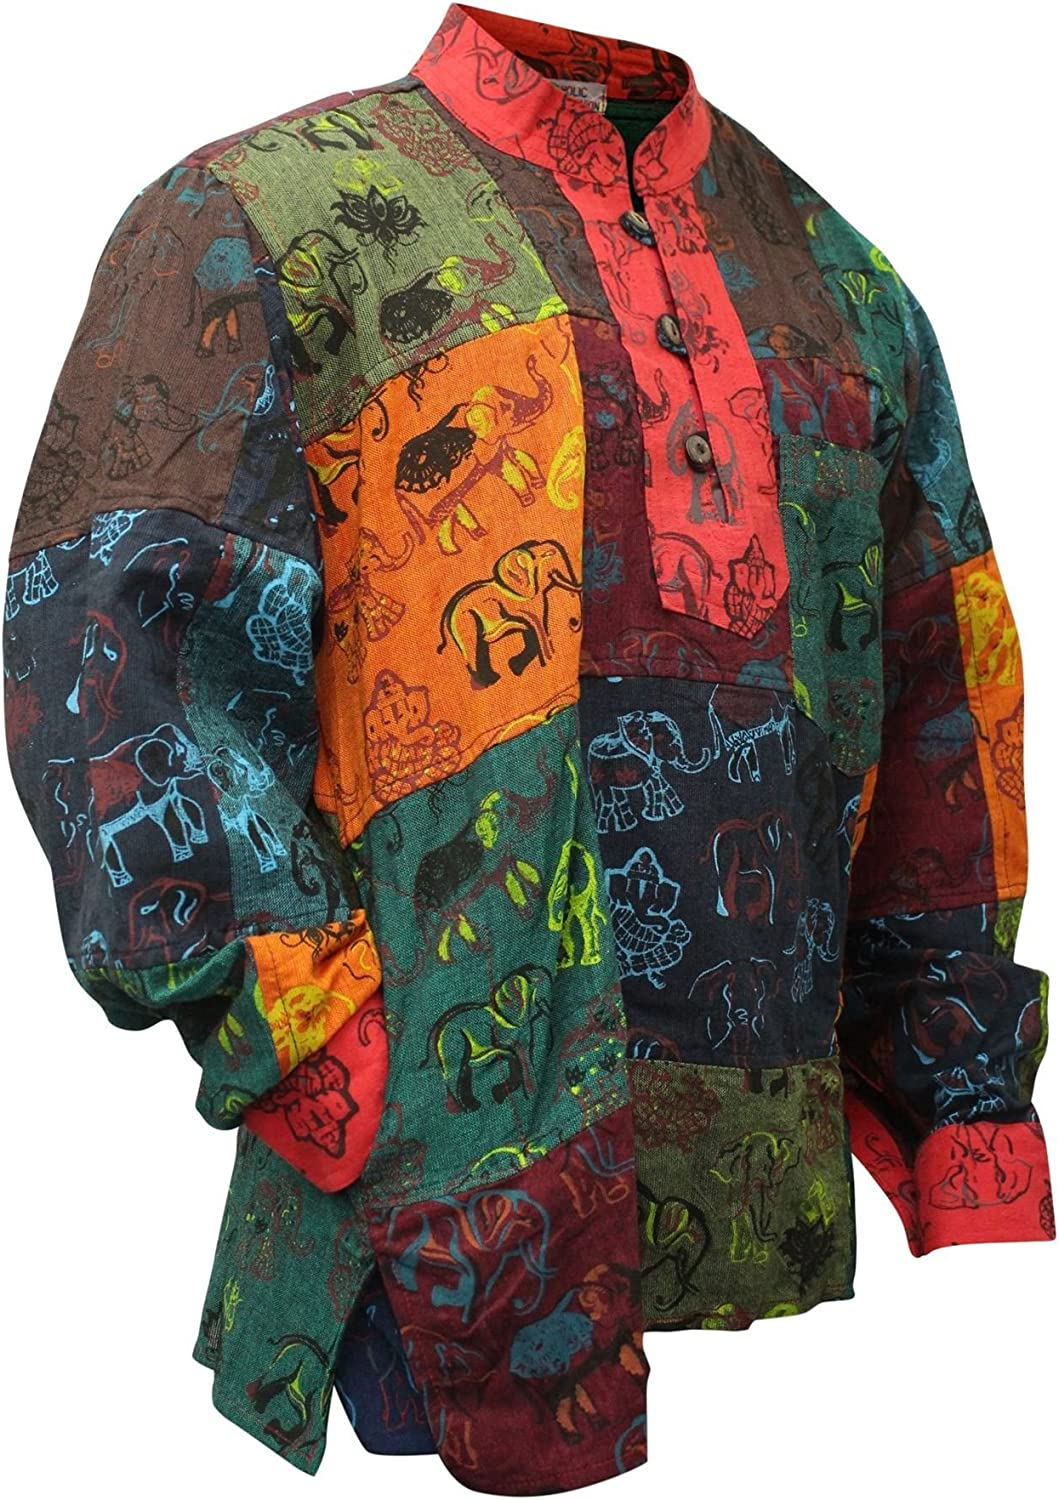 Shopoholic Fashion Mens Summer Colourful Grandad Hippie Shirt